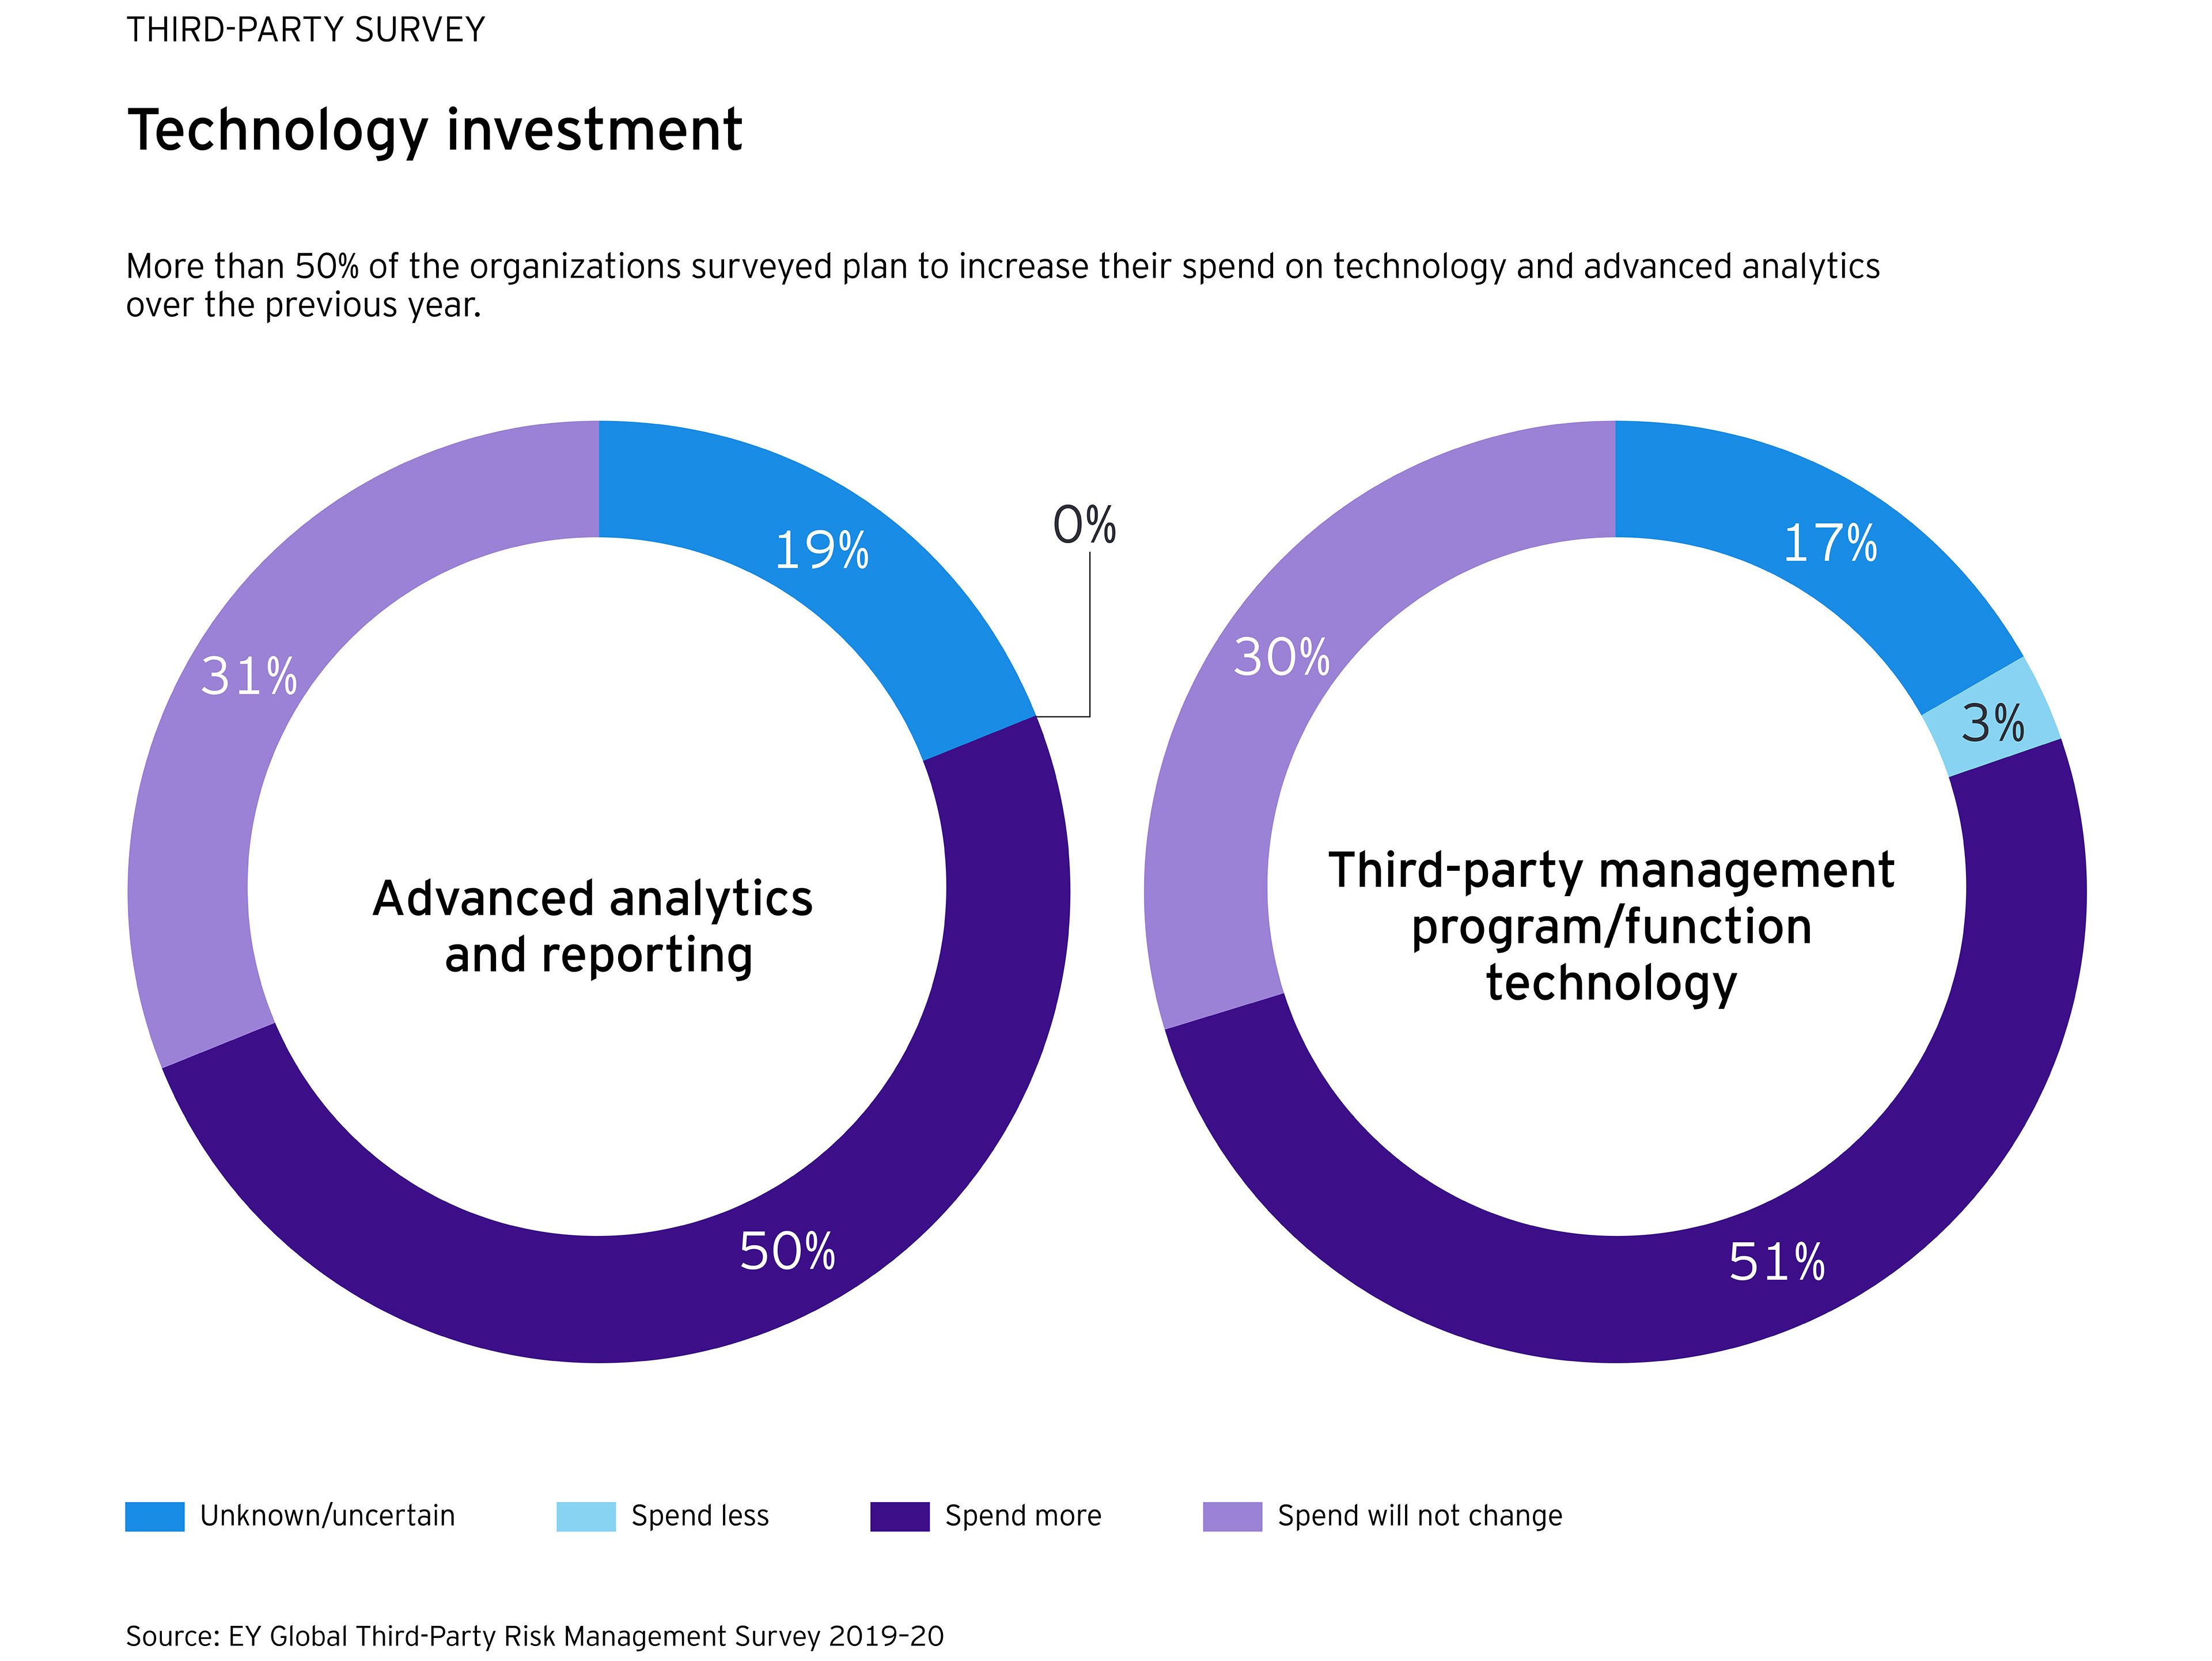 EY - Technology investment